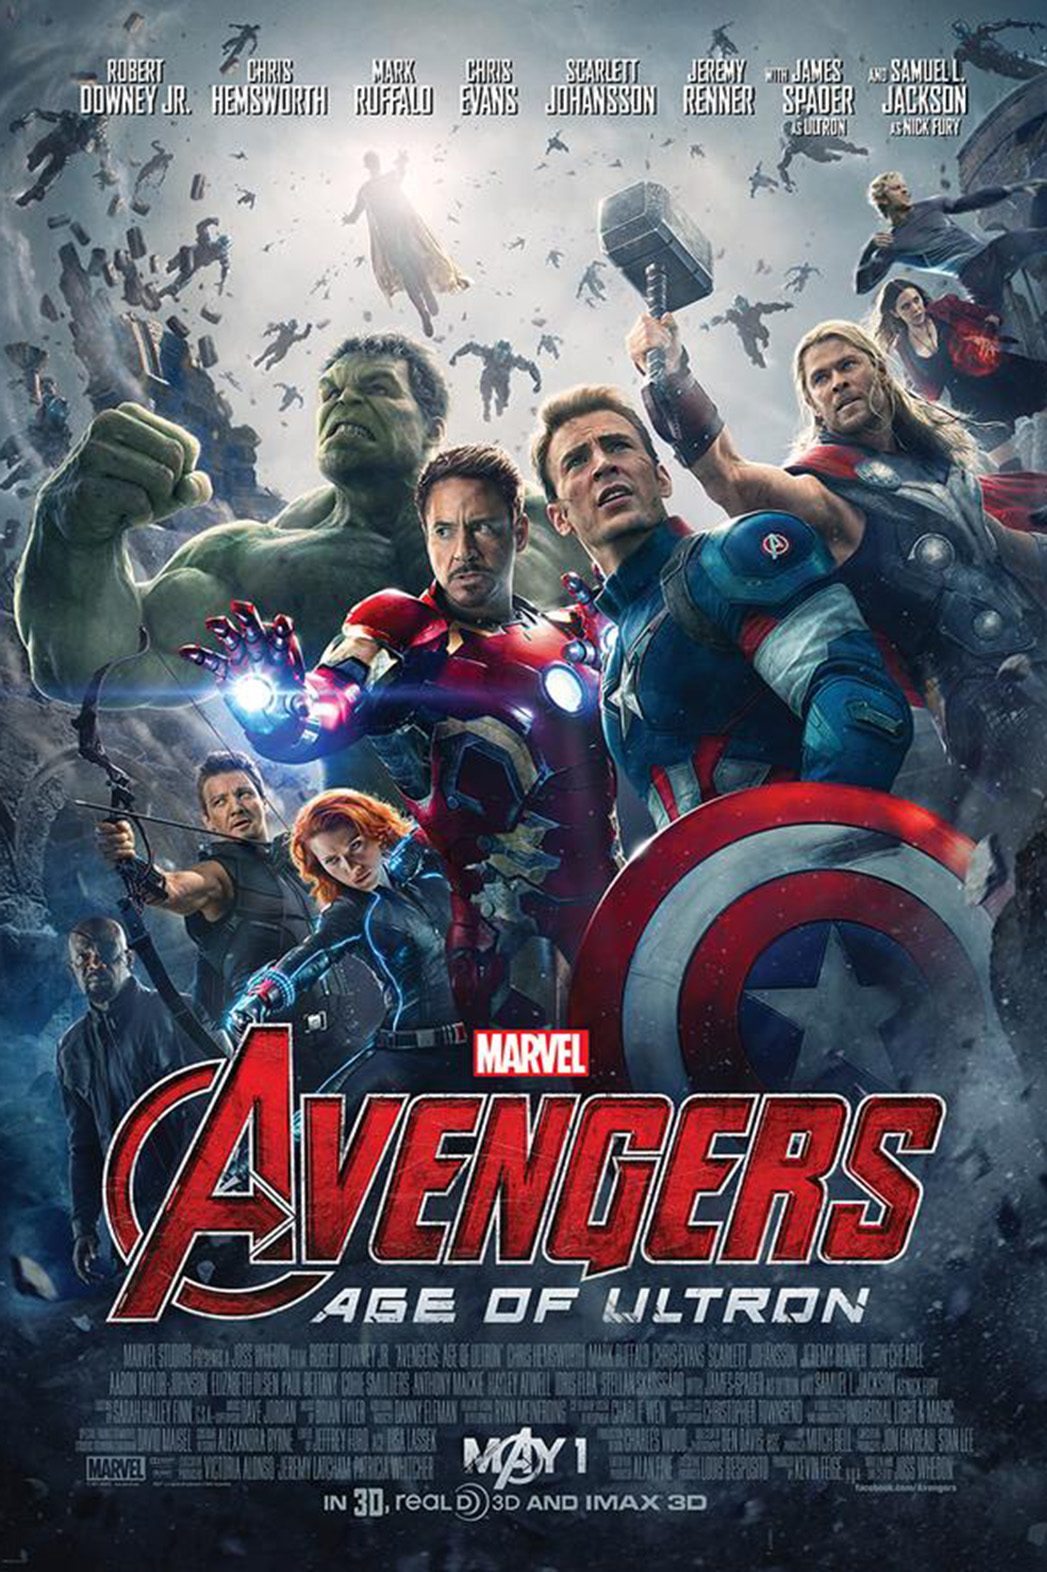 Avengers Age of Ultron - P 2015